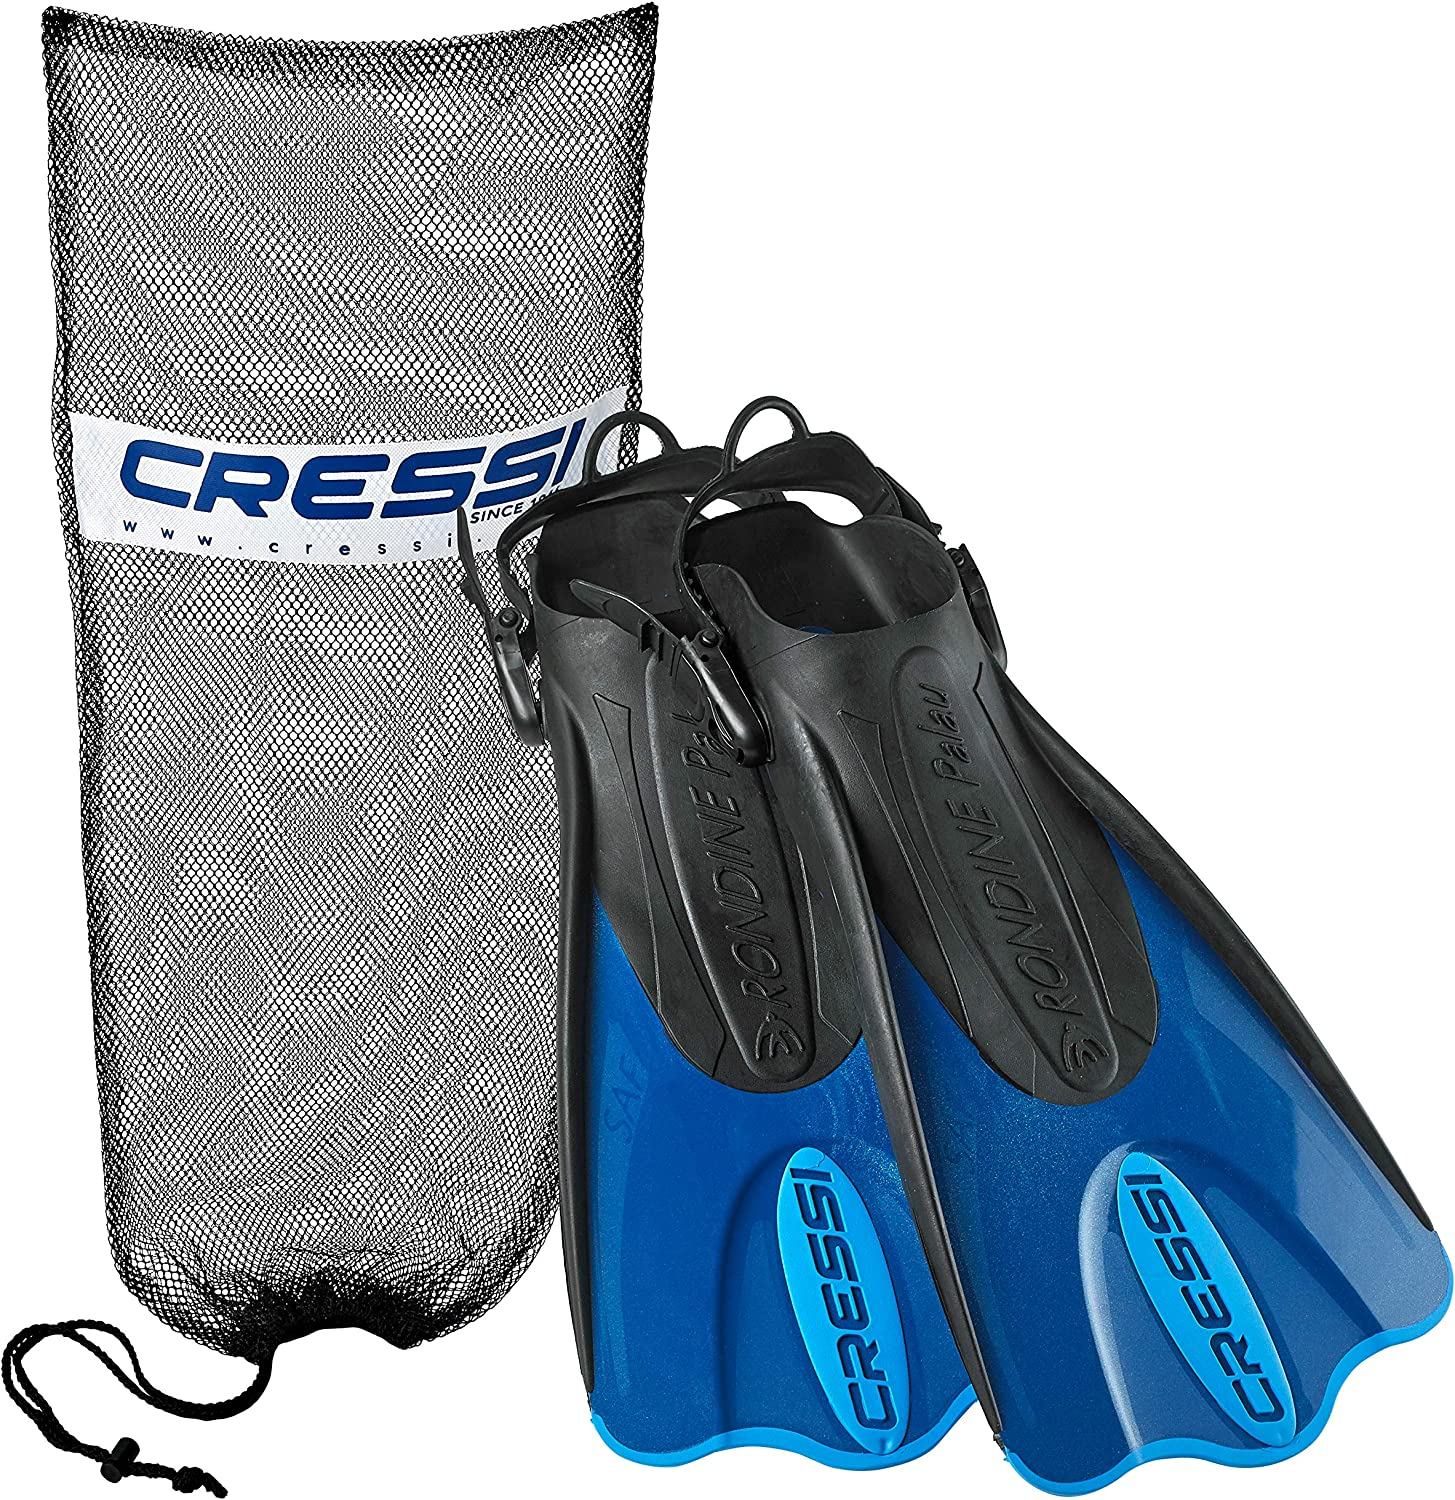 Cressi Palau Short Snorkeling Fins with Mesh Bag, Blue, X-Small/Small